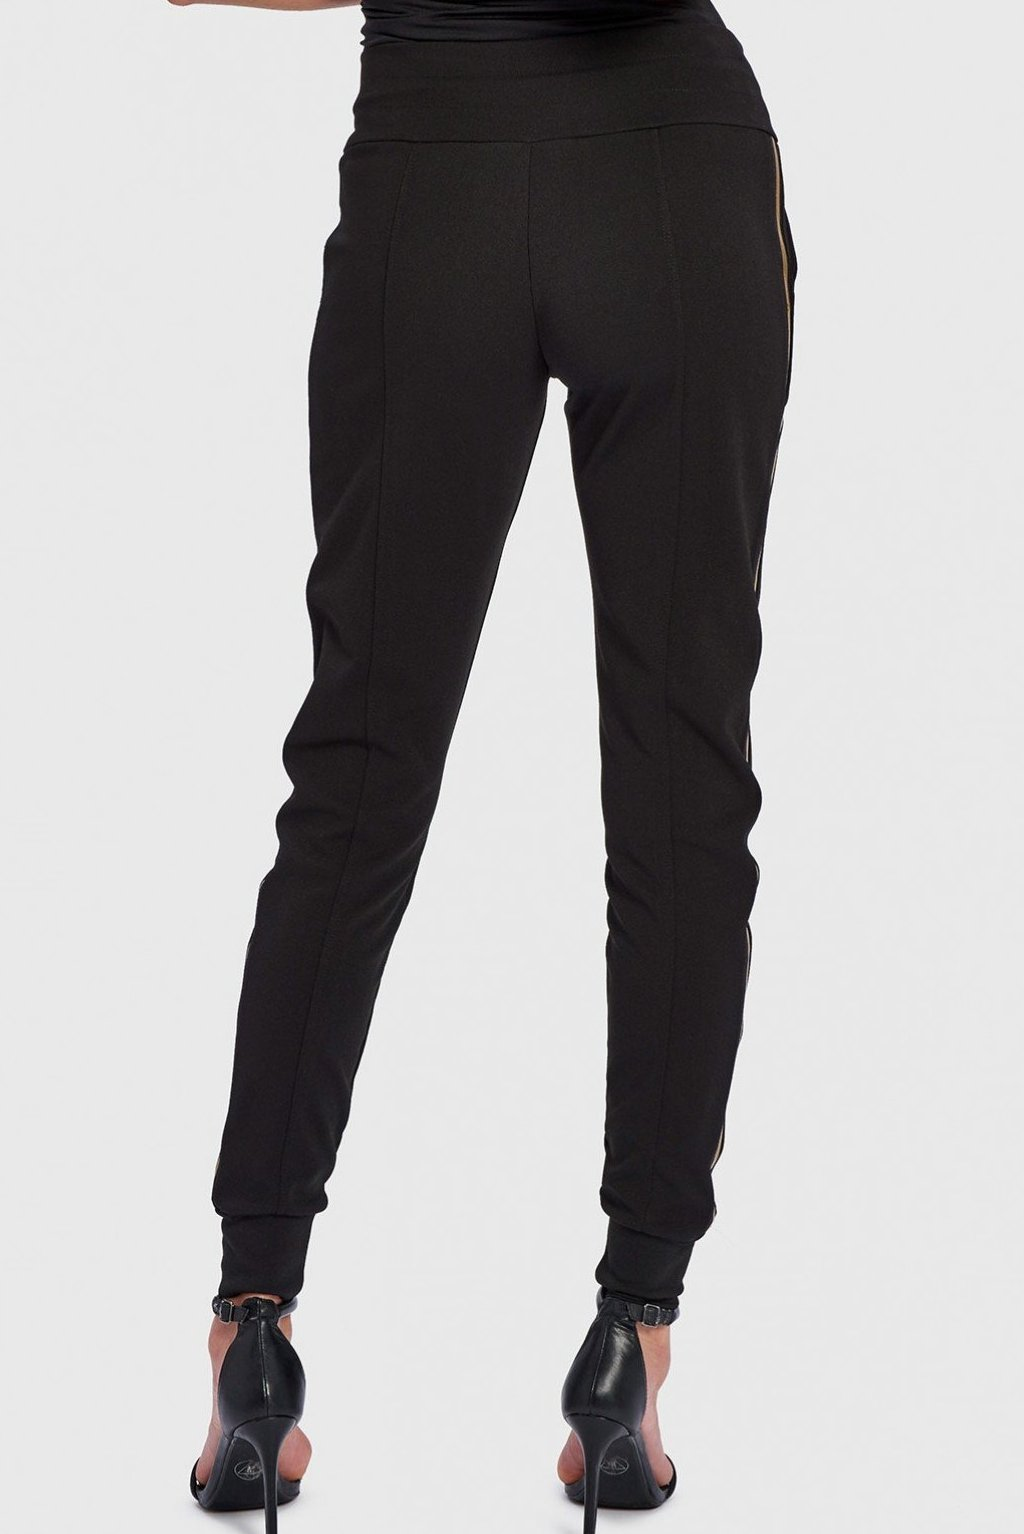 FOREVER UNIQUE HEXA BLACK LOW RISE TRACK PANTS WITH GOLD SIDE STRIPE